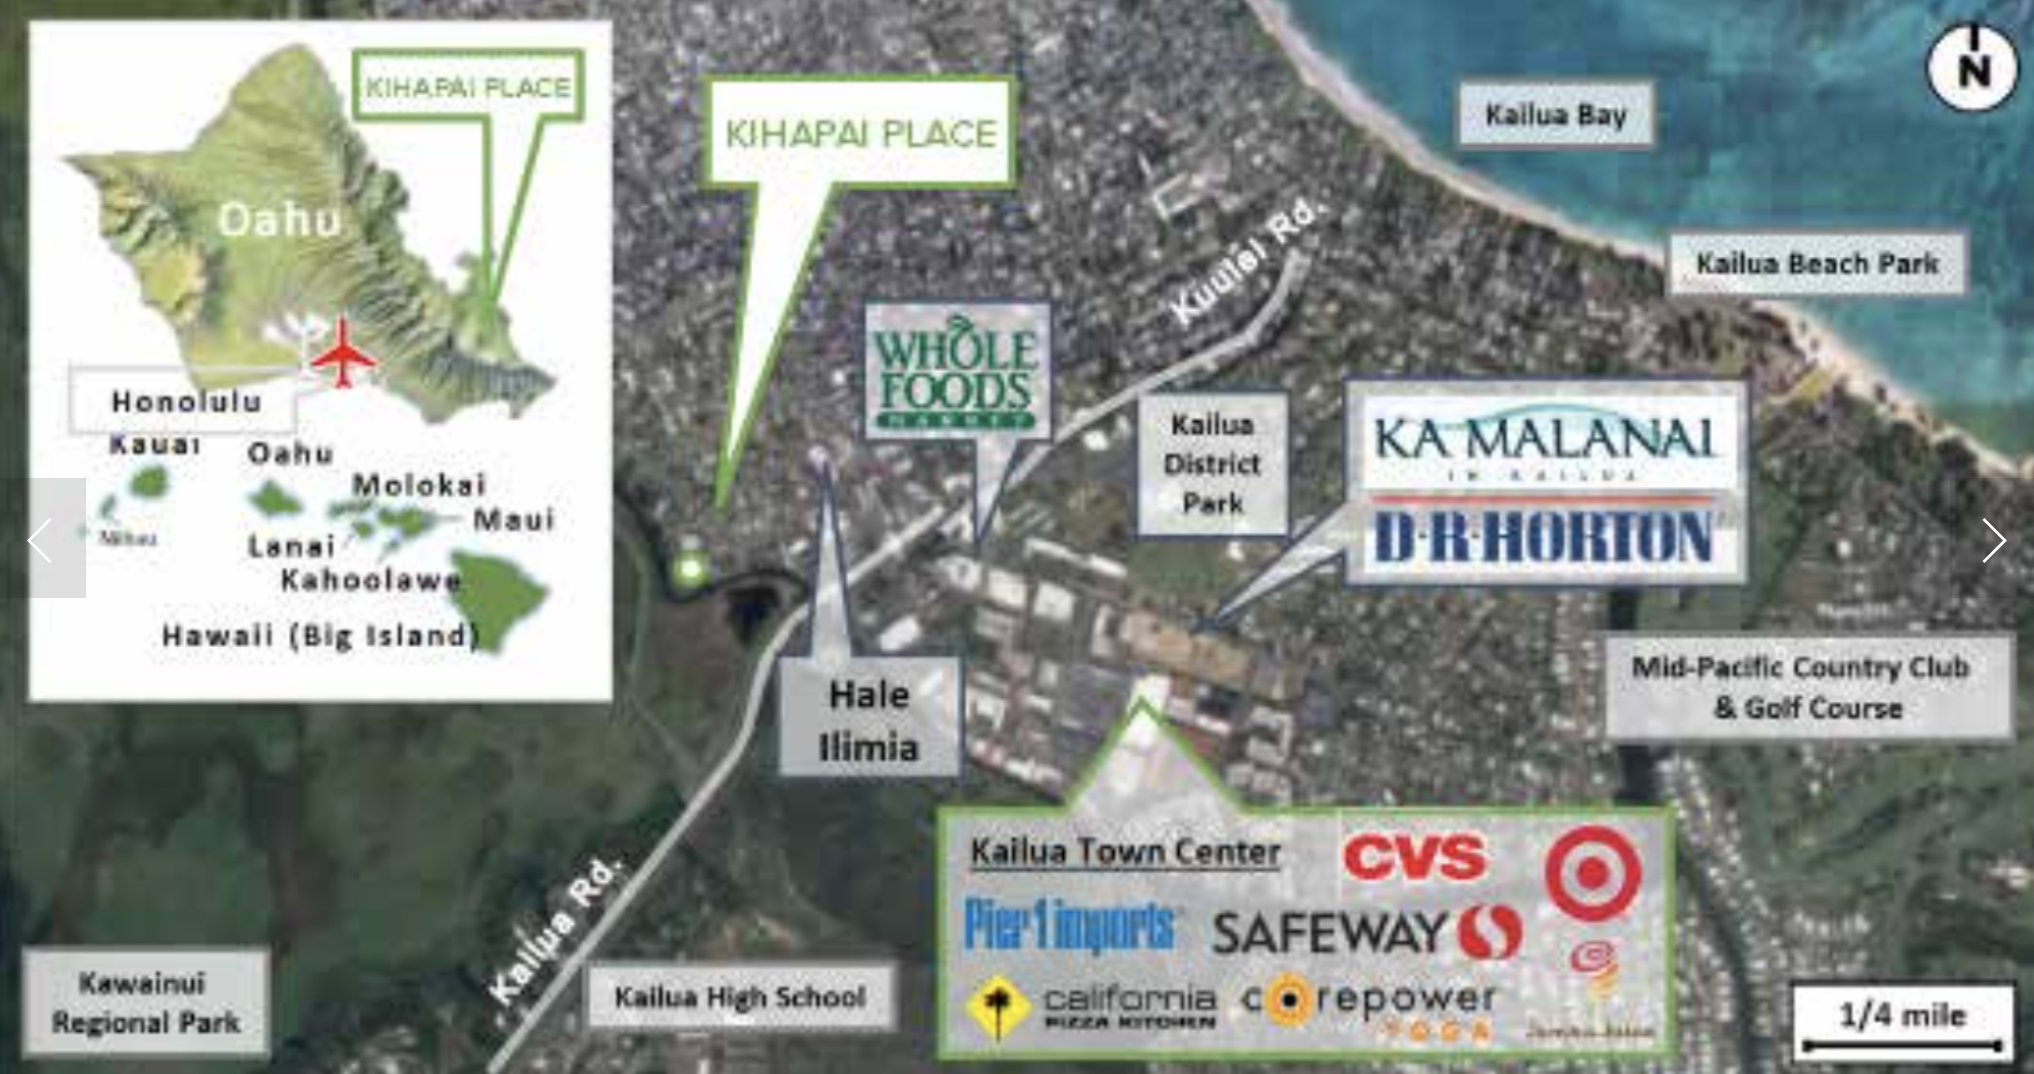 Kihapai Place New Kailua Condos Official Pricing Floor